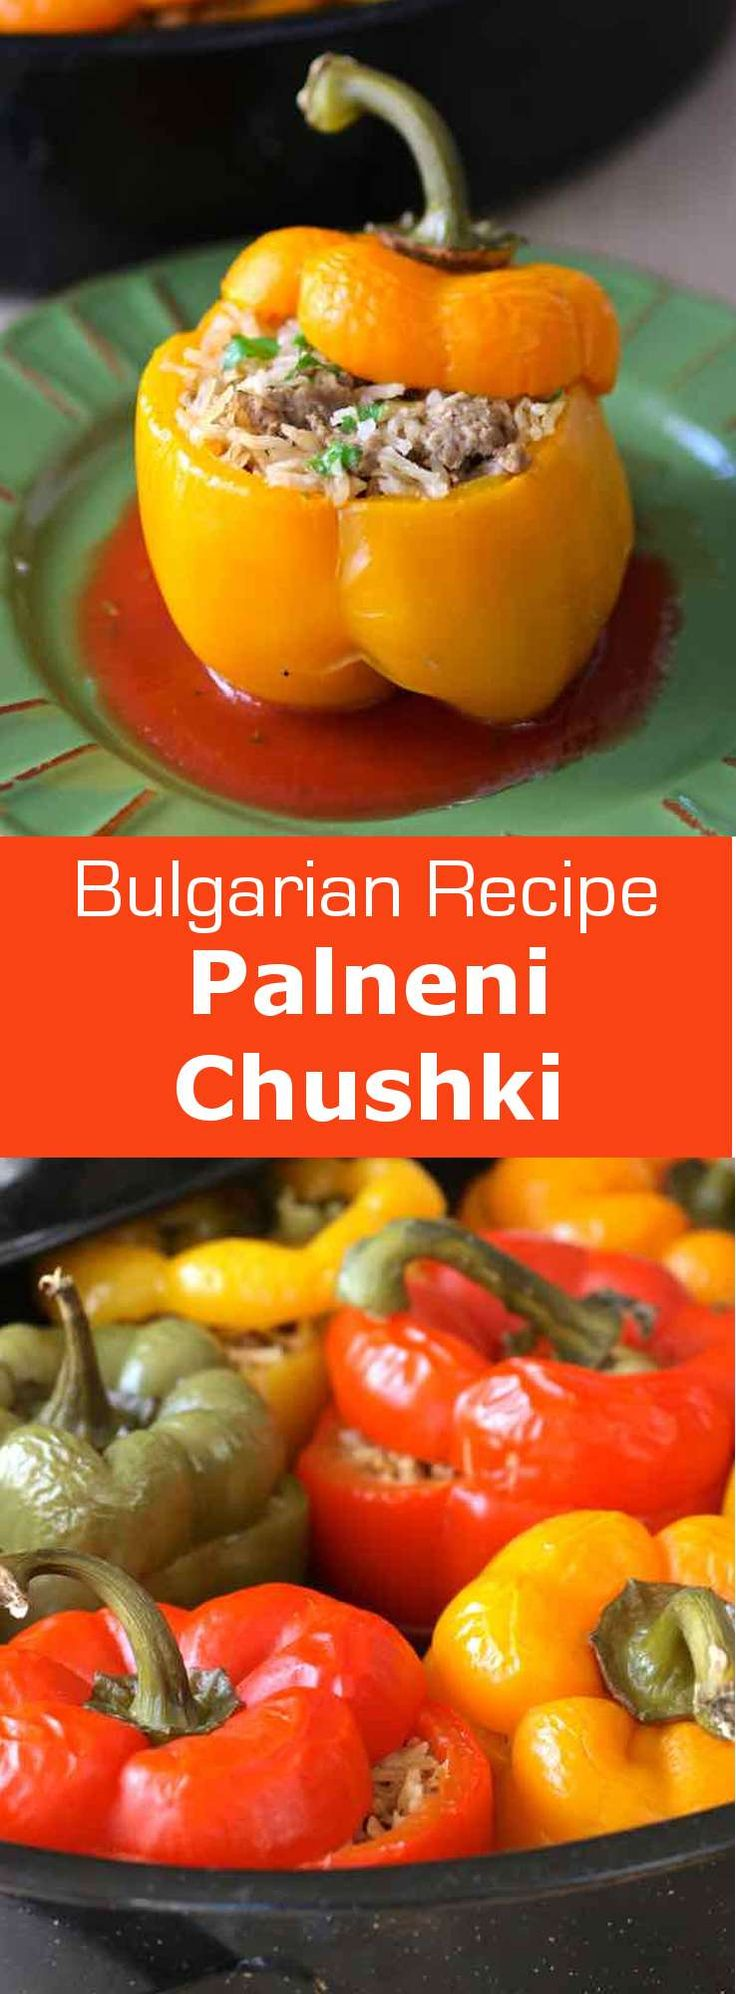 Palneni chushki is the Bulgarian version of the stuffed bell pepper recipe, a…